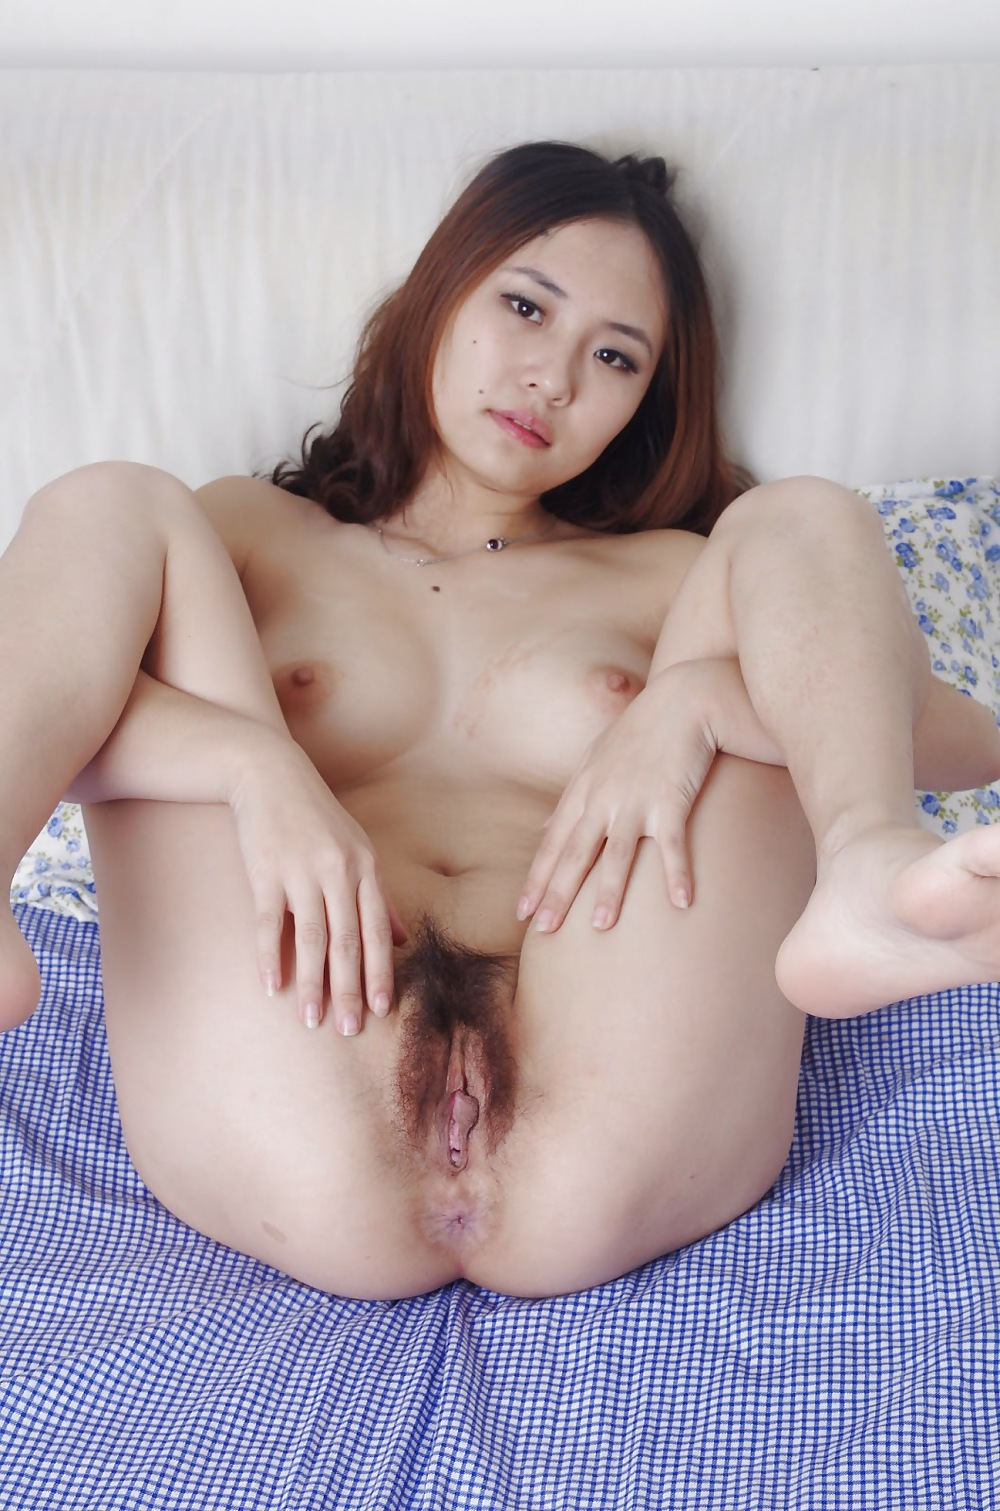 Free porn vagina indonesia, free pics gallery small young little